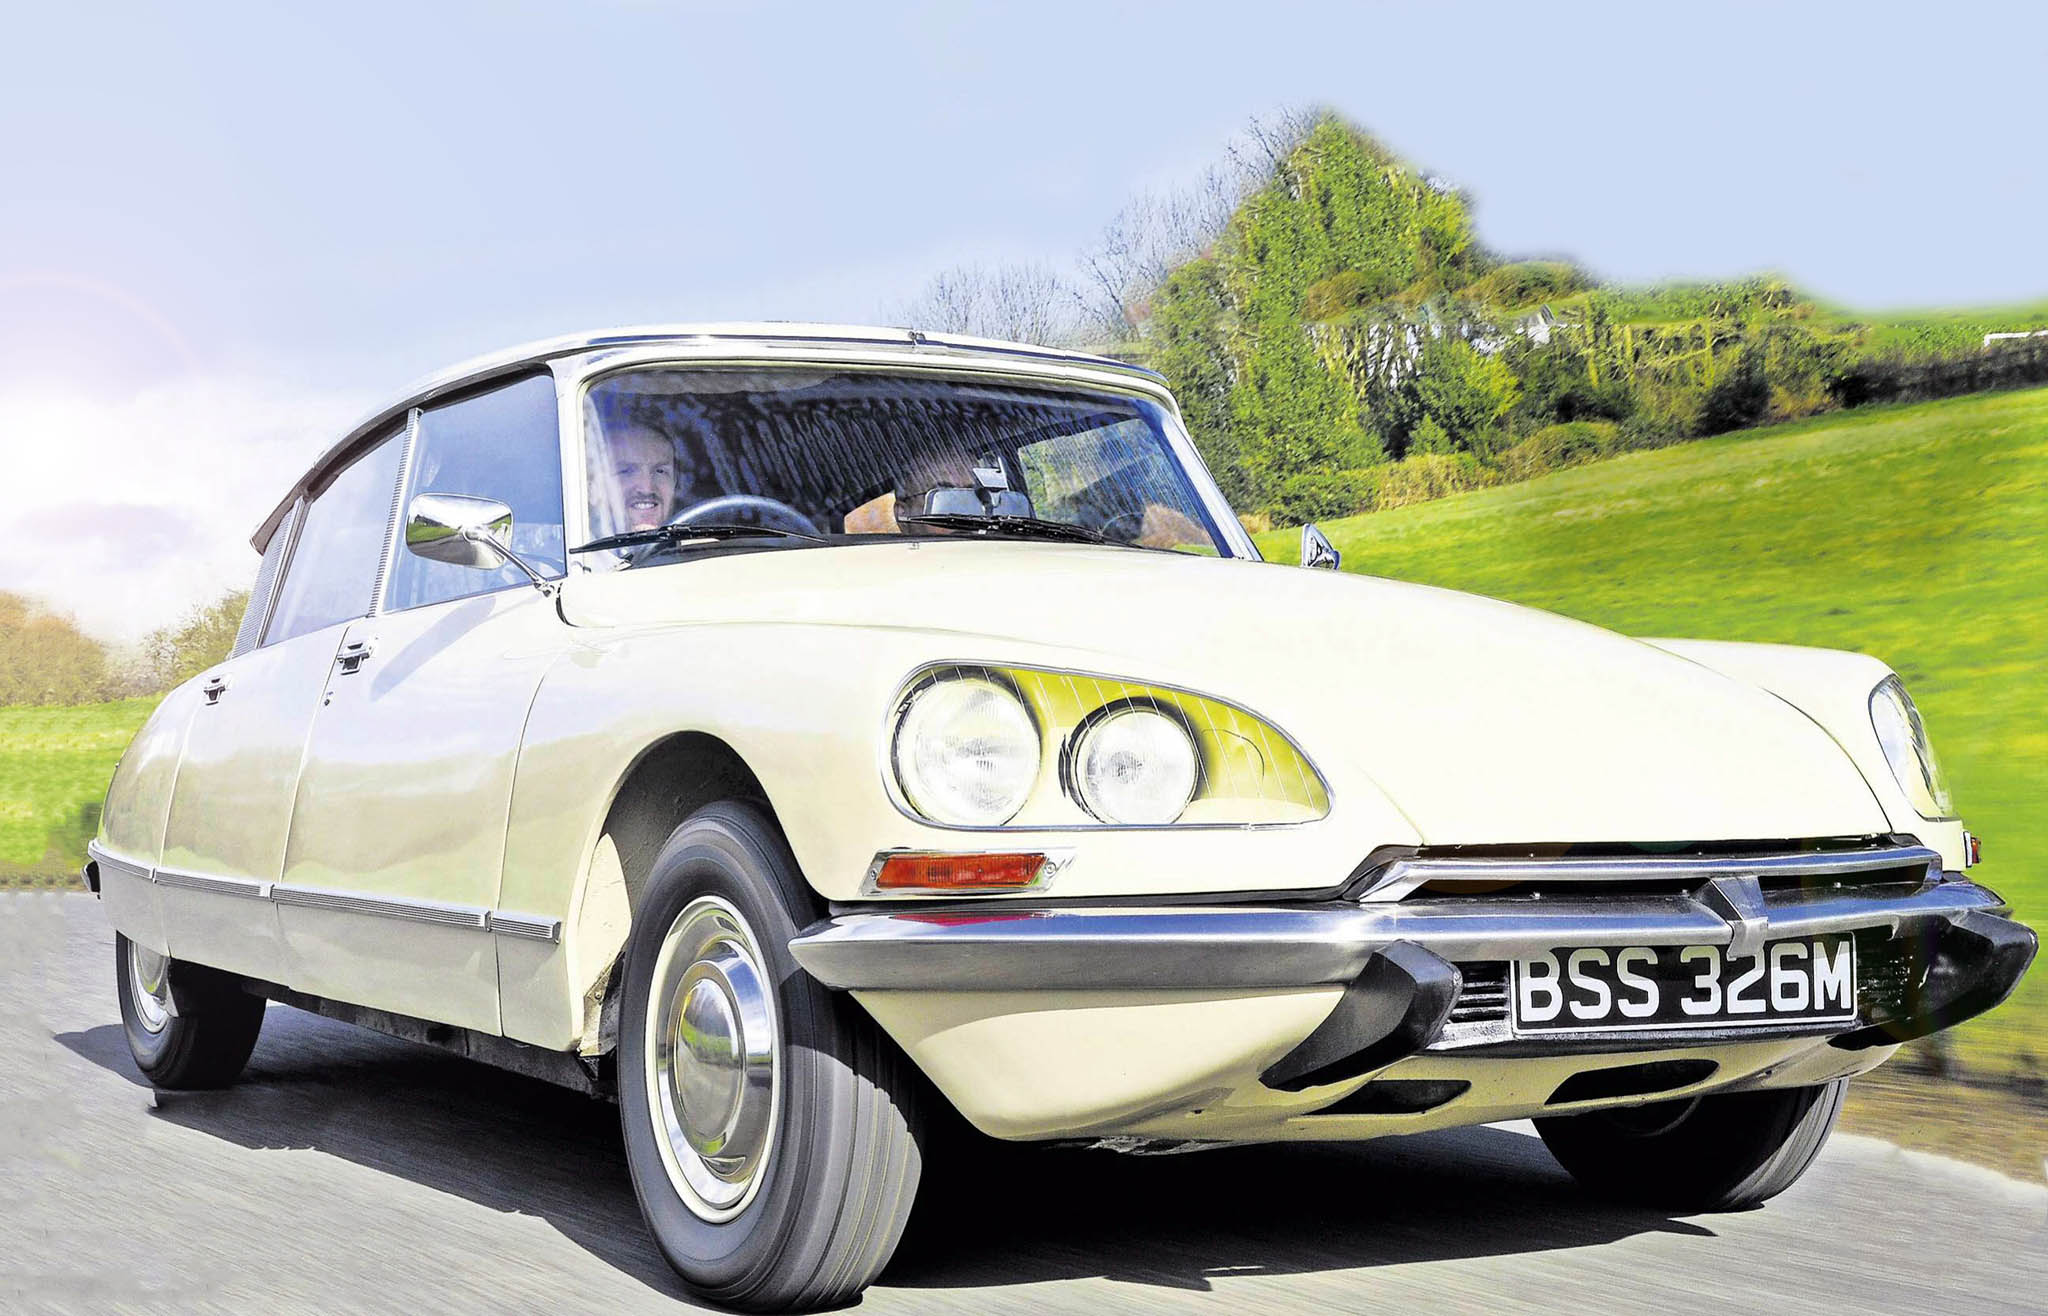 Goddess in the details 1972 Citroen DS21 driven - Drive-My Blogs - Drive